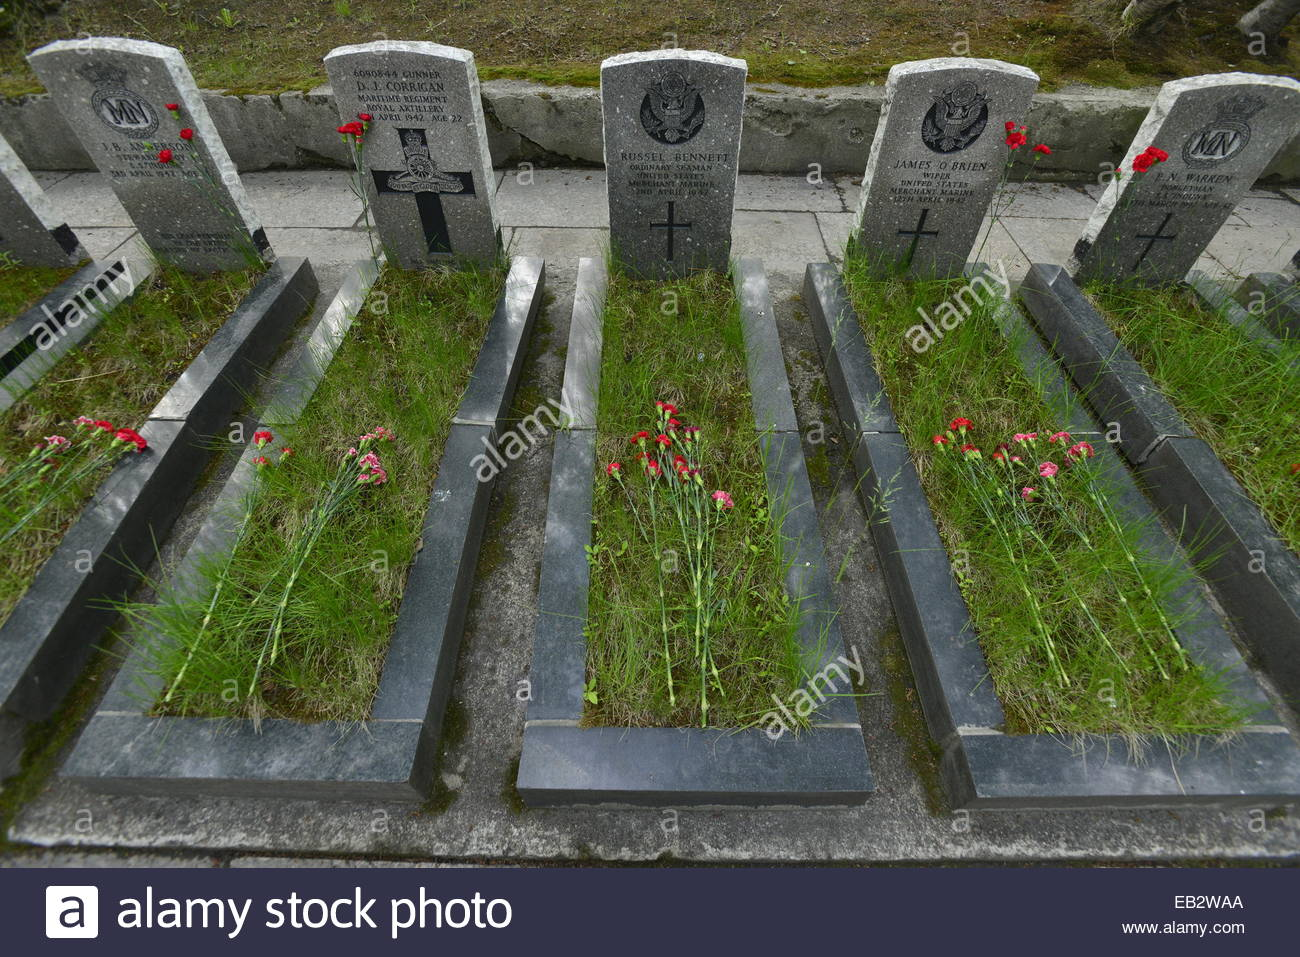 Graves, at the Allied Cemetery, of sailors killed in the convoys of WWII. - Stock Image